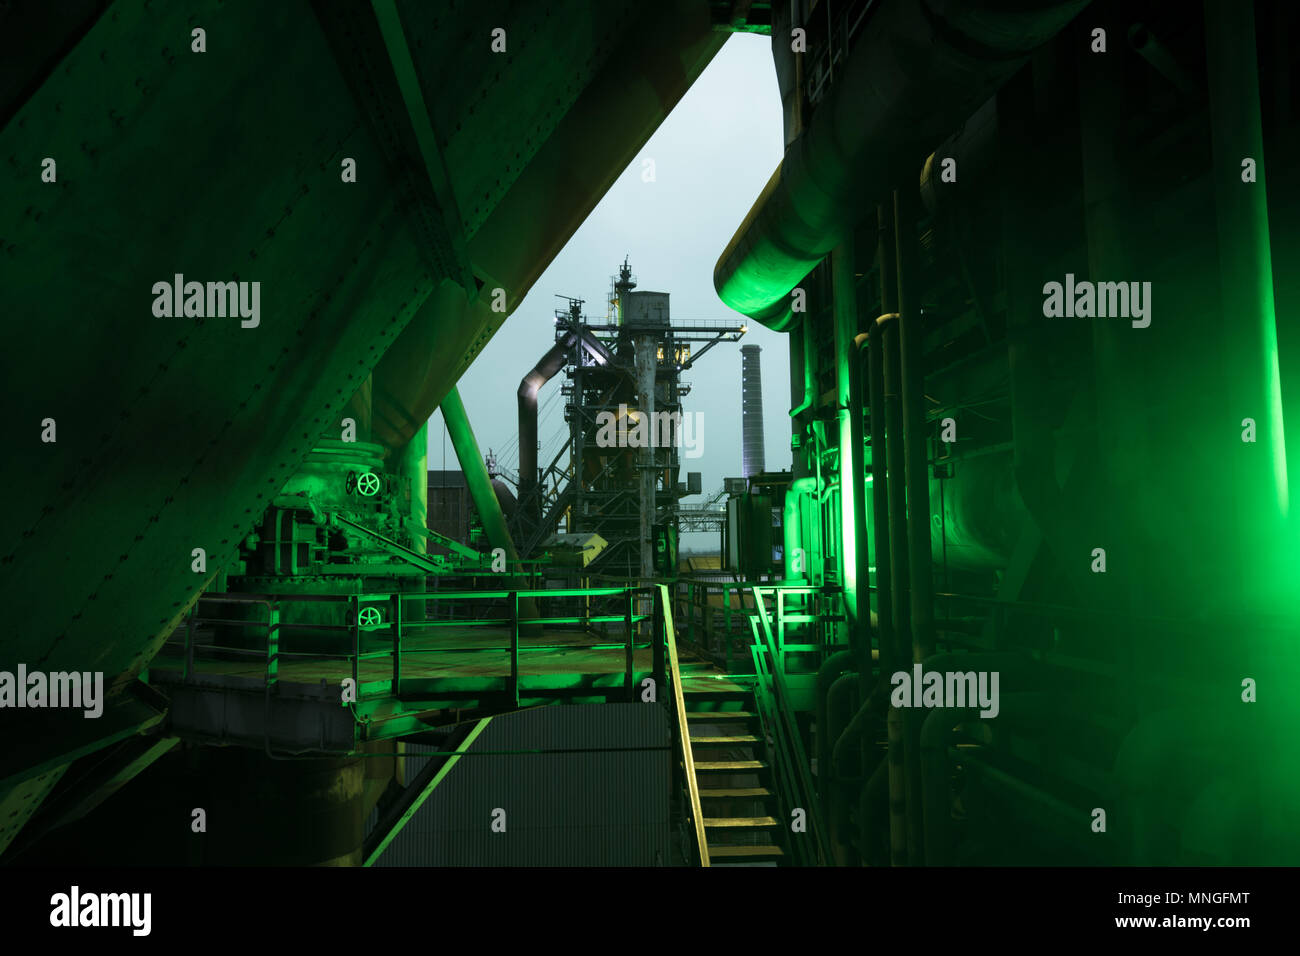 Night view of a historical steel factory in duisburg, germany, with a green lamp, shining from the side, in the foreground Stock Photo